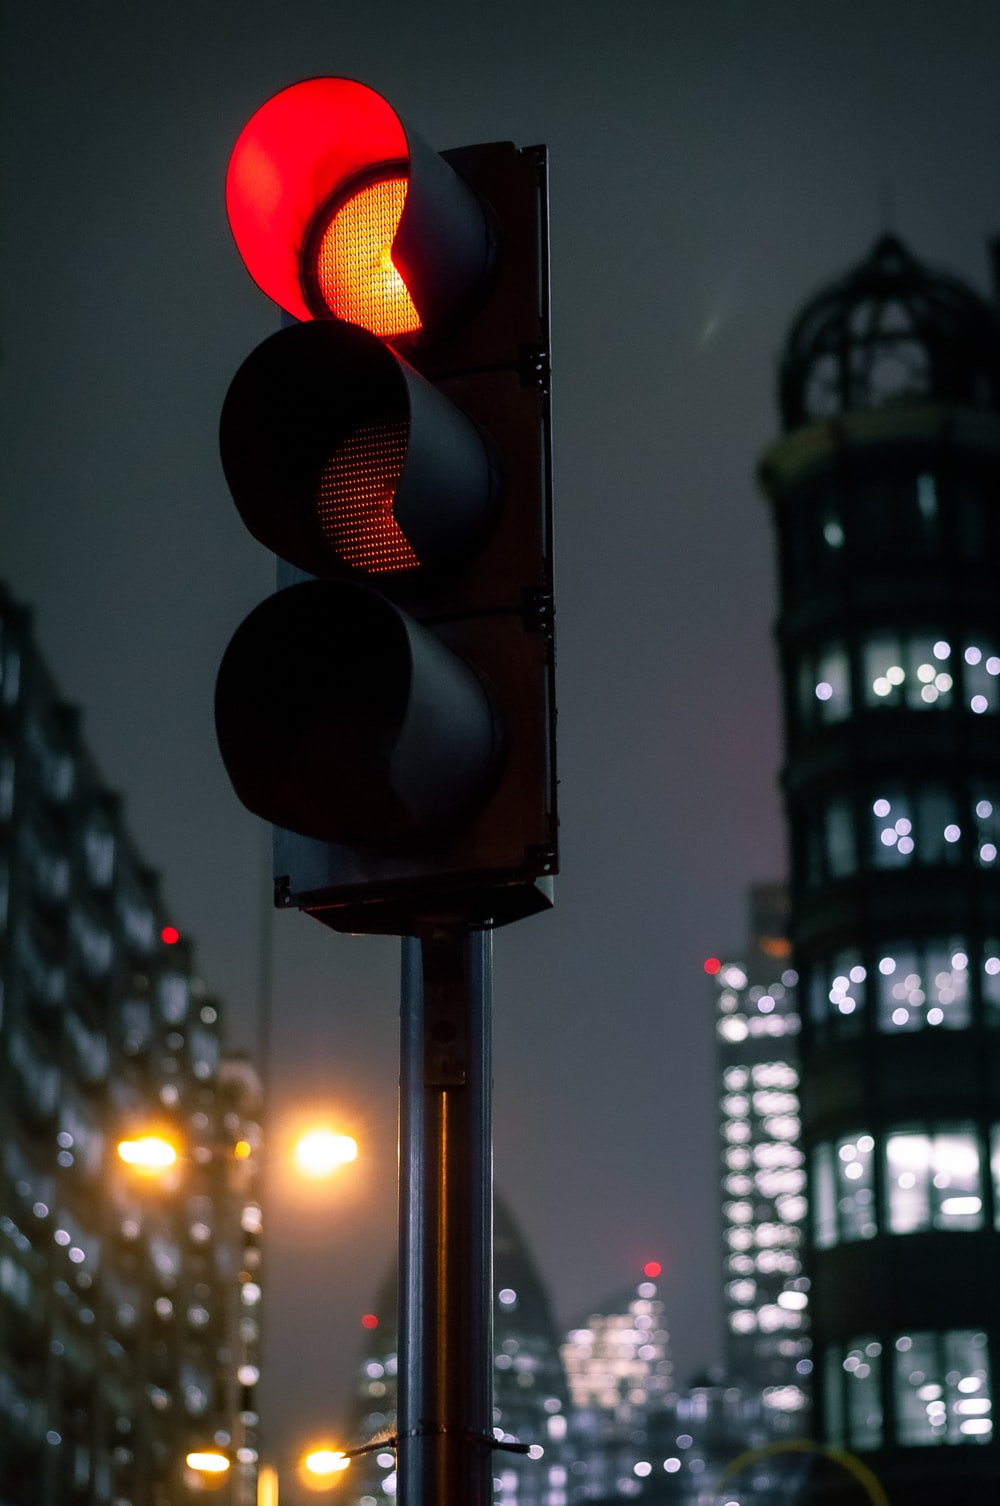 traffic light with red light during night time